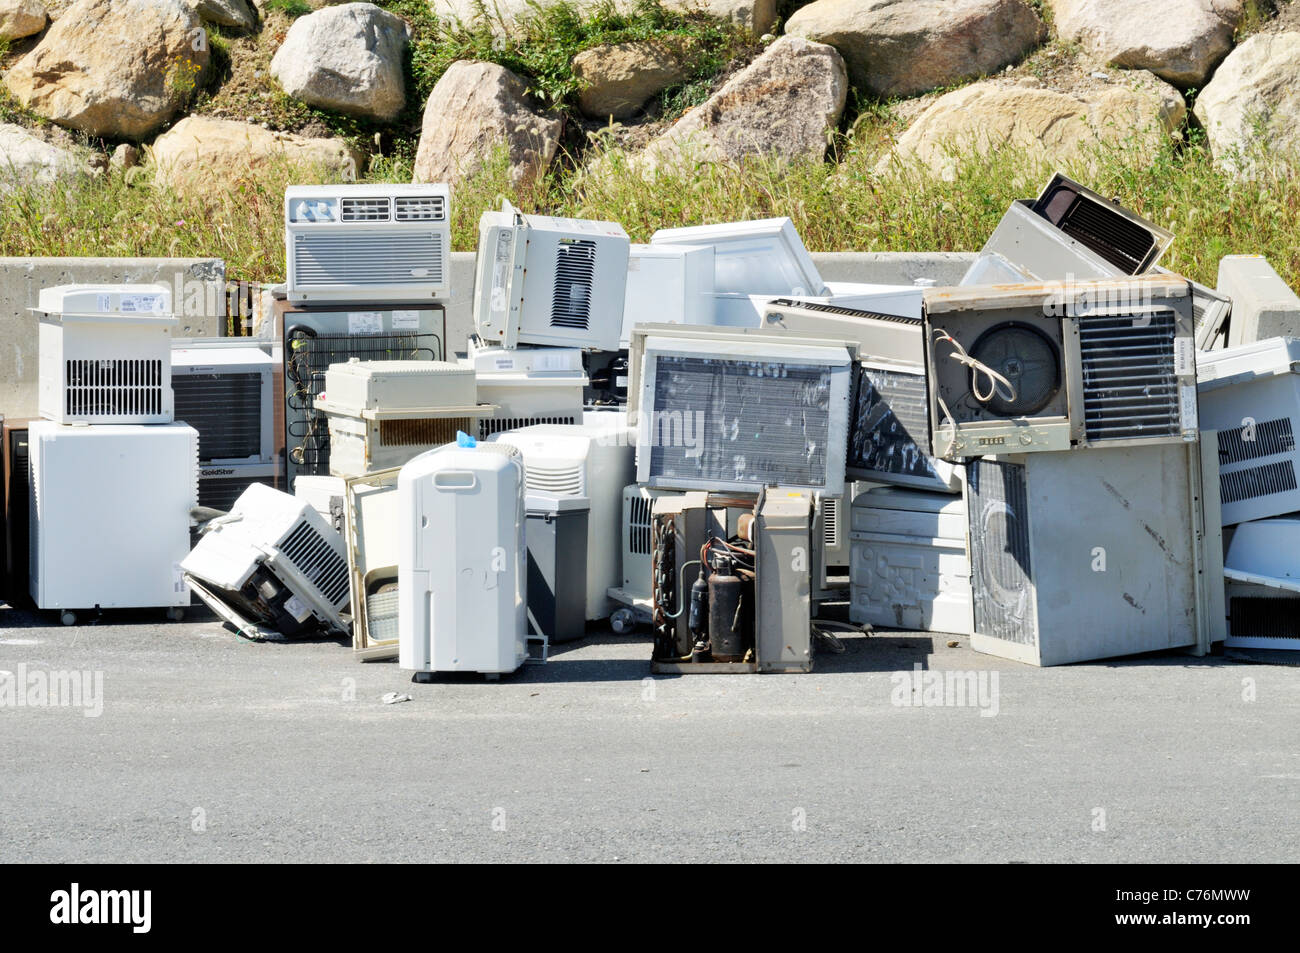 Pile of disposed or broken air conditioners at a recycling center landfill, USA. - Stock Image